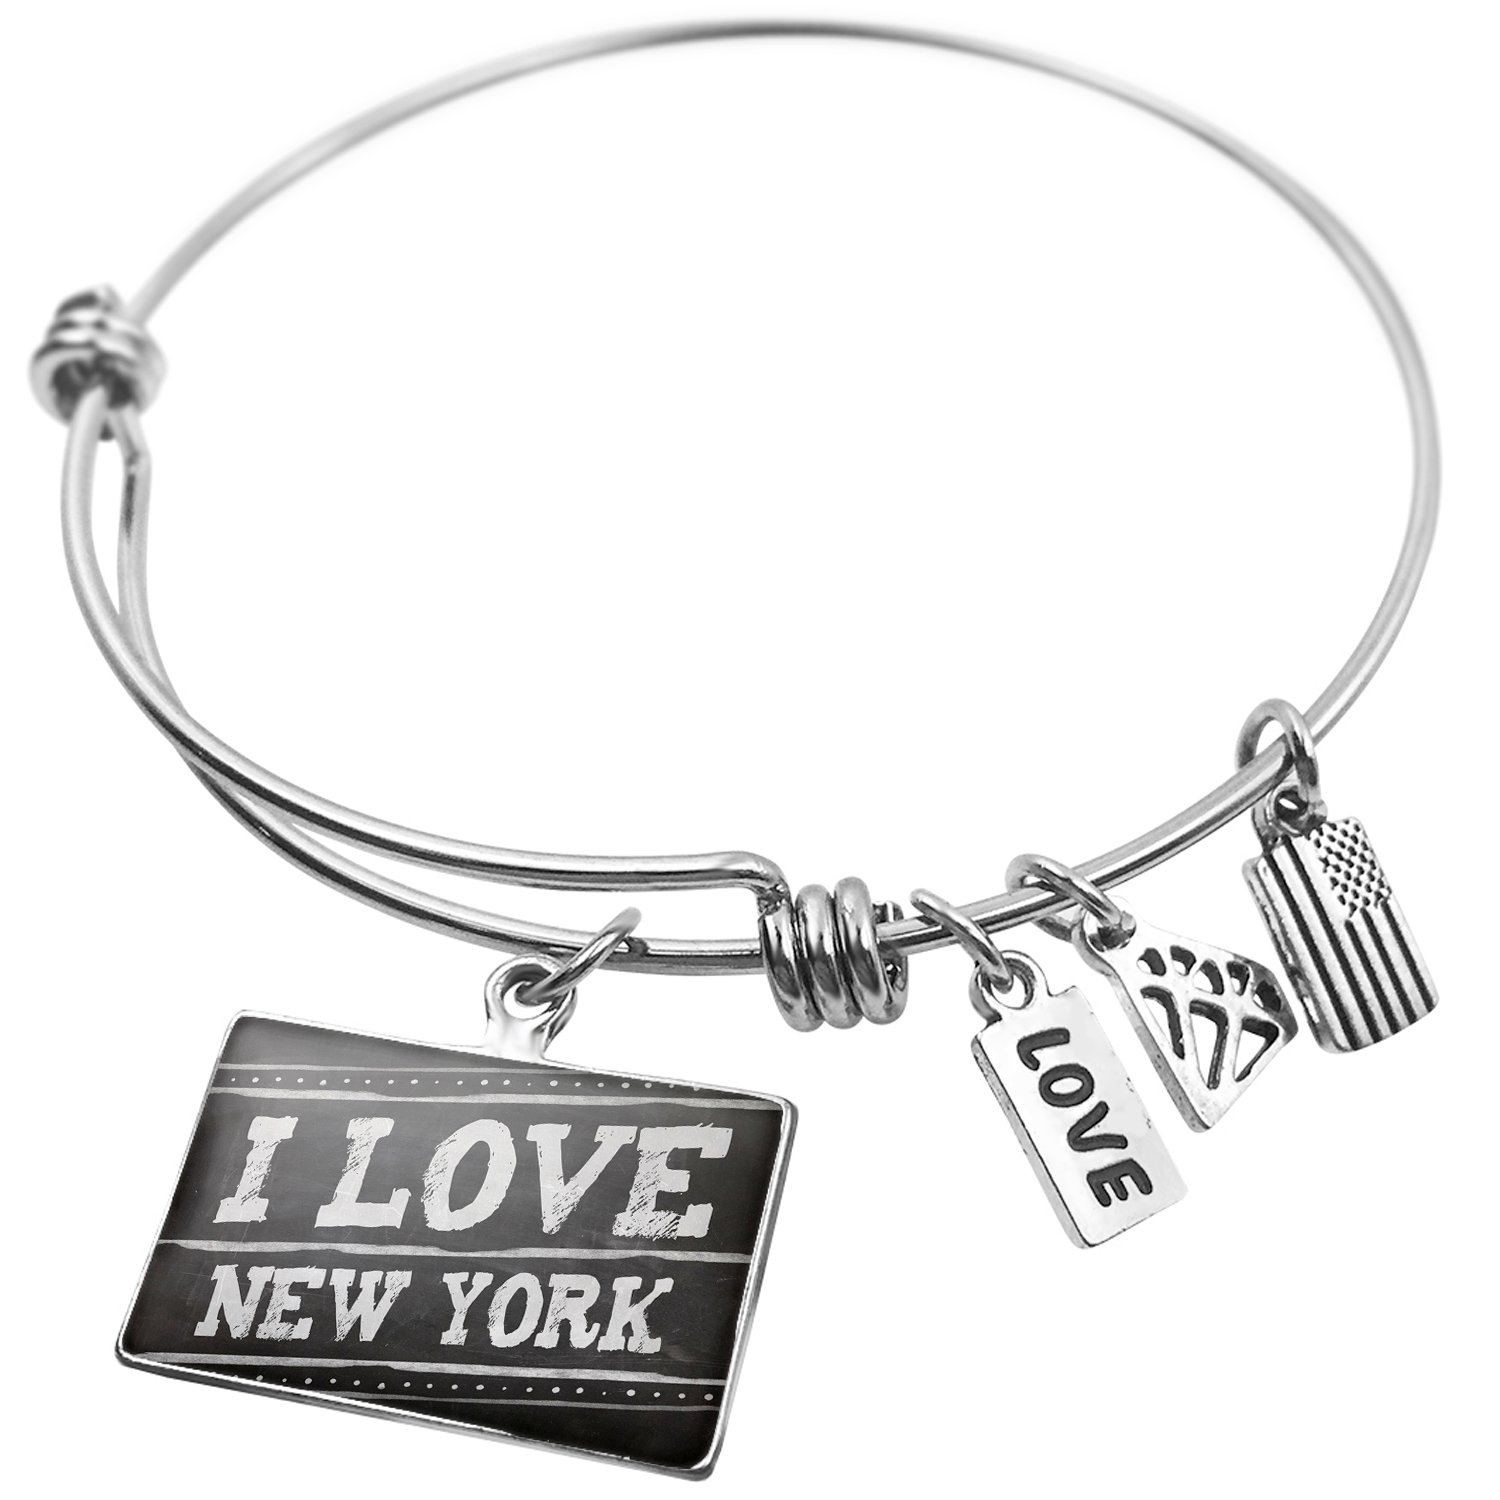 NEONBLOND Expandable Wire Bangle Bracelet Chalkboard with I Love New York